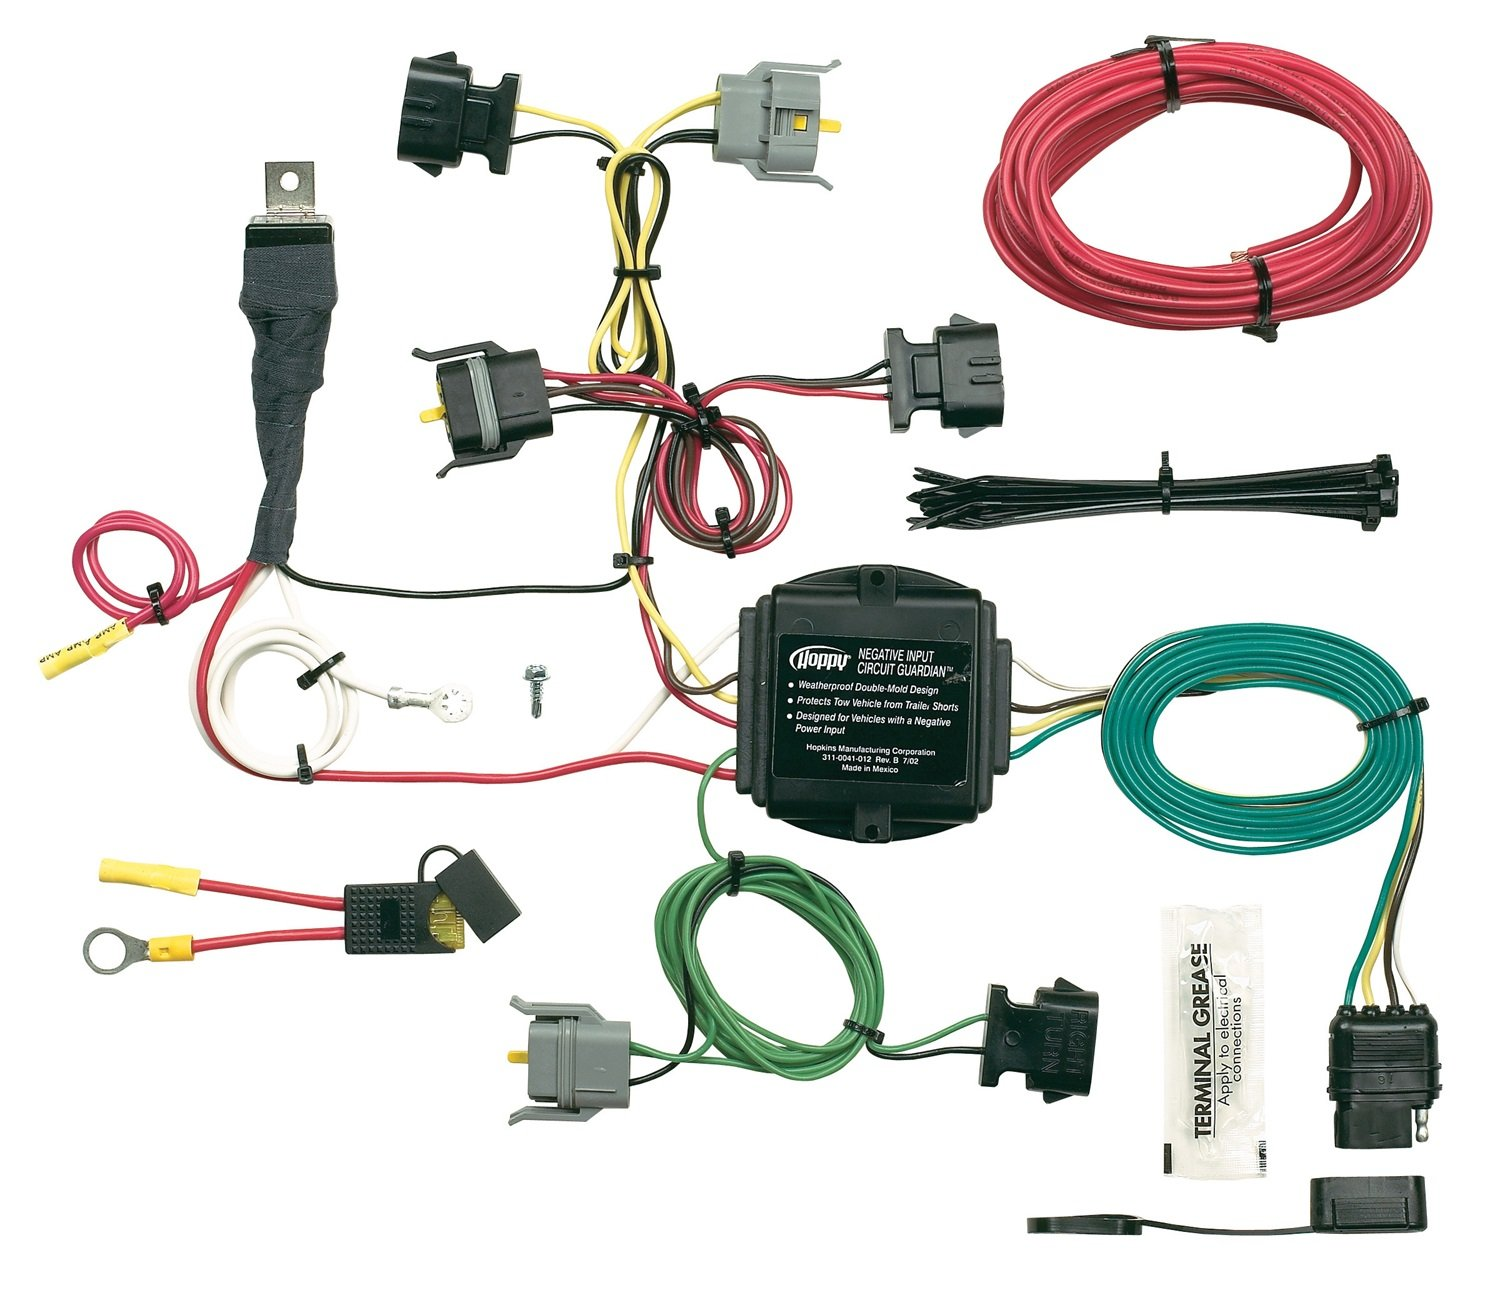 71whSupYHeL._SL1500_ amazon com hopkins 40615 plug in simple vehicle wiring kit wiring diagram for hopkins trailer plug at gsmx.co